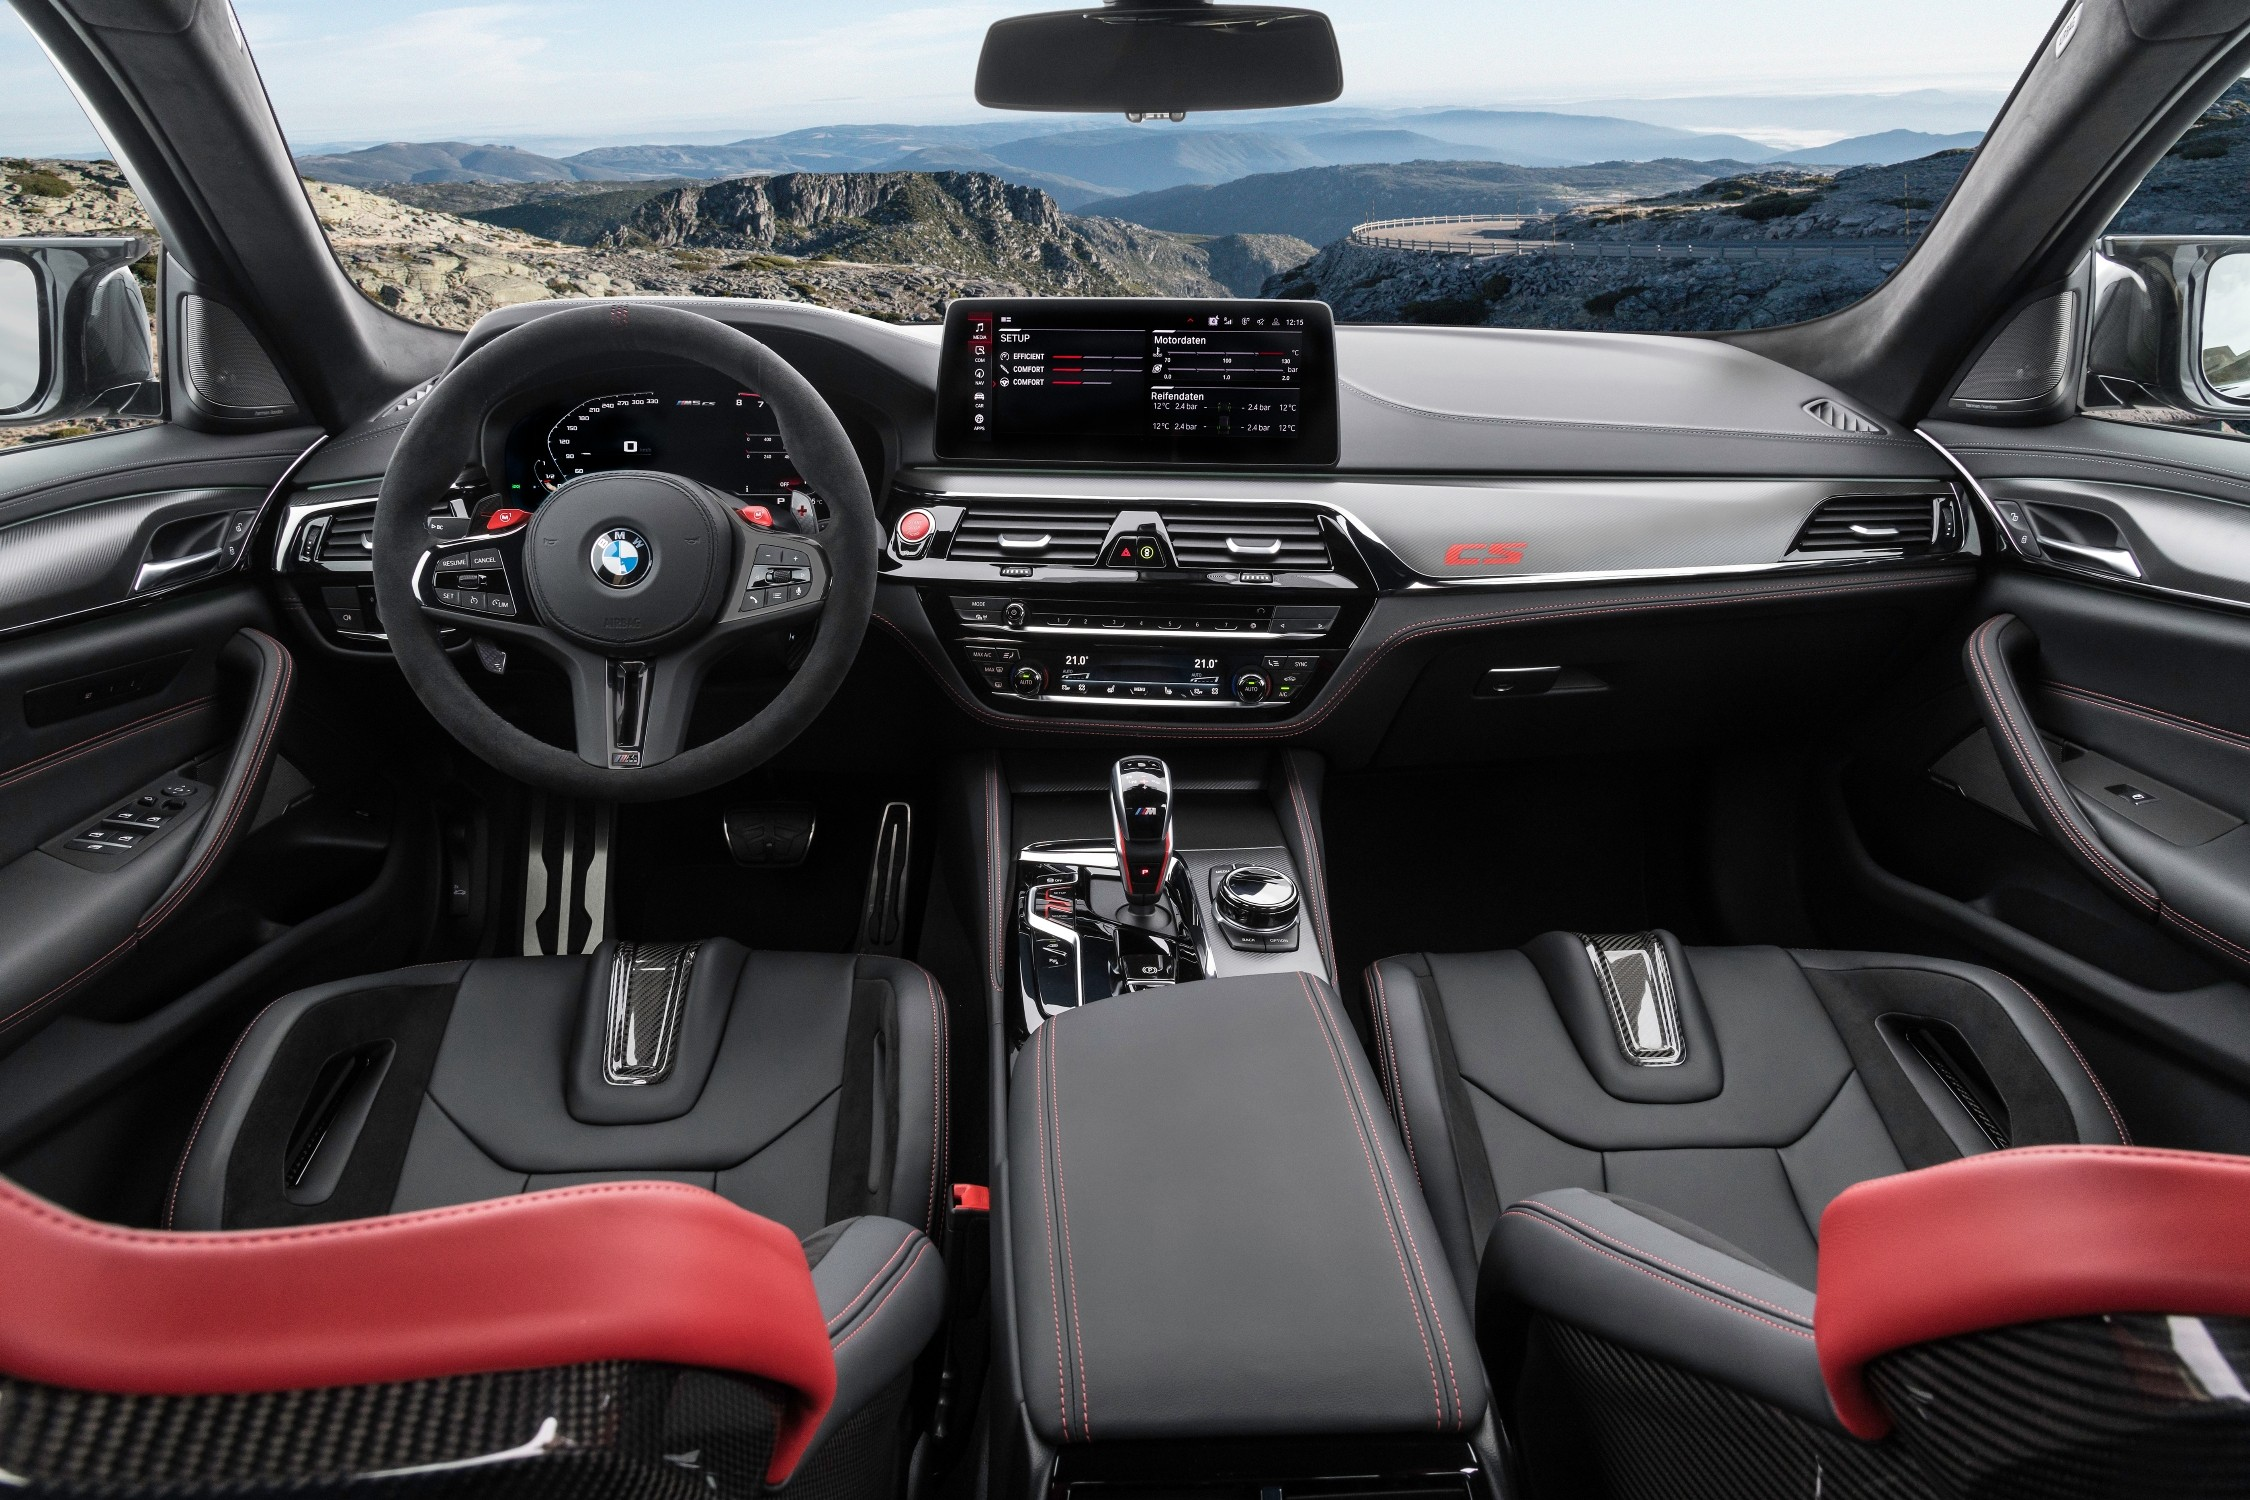 The M5 CS has beautiful black carbon fibre M seats with red stitching. All seats have the Nurburgring design, where M5 CS prototypes have been seen several times.